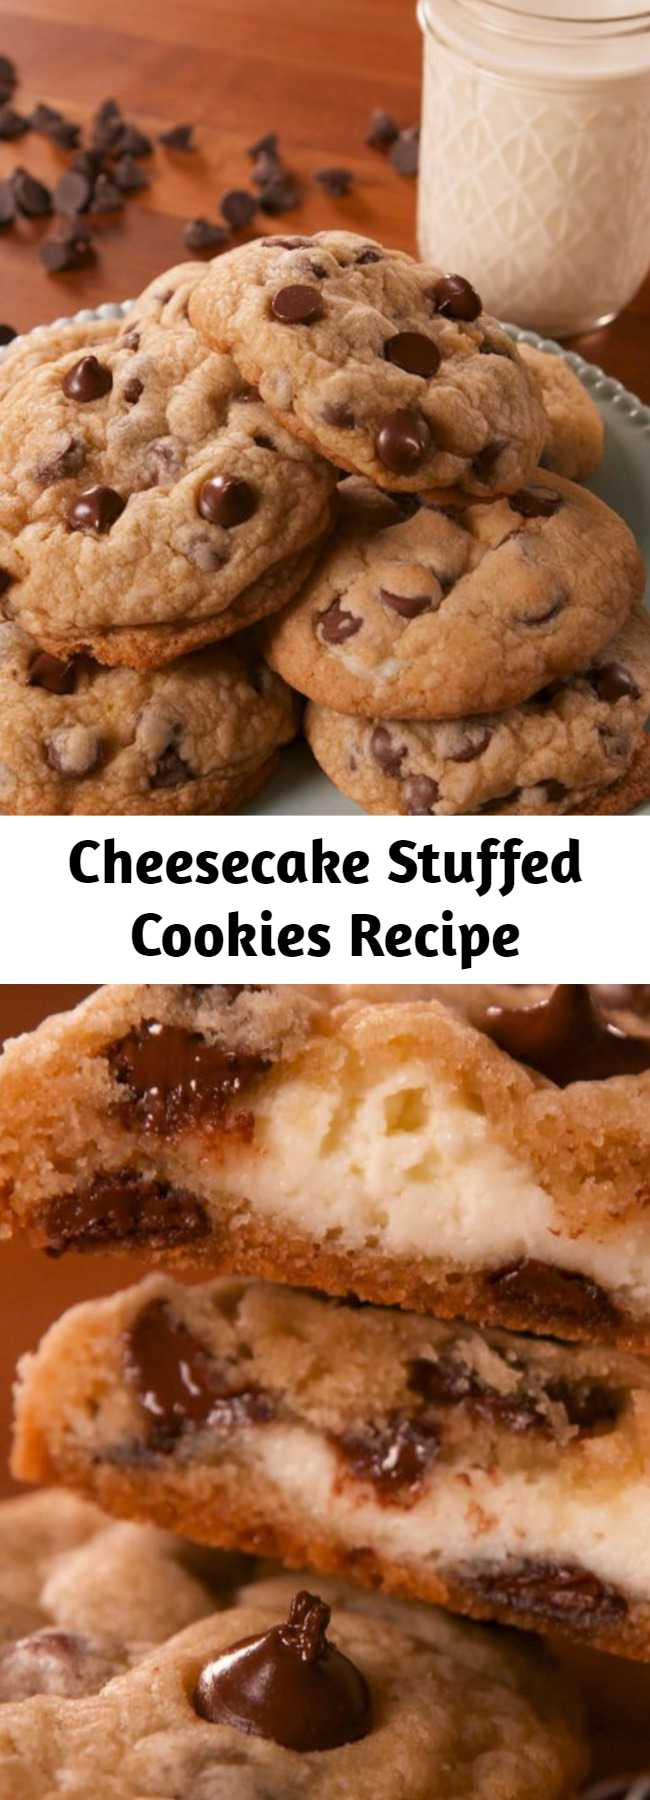 Cheesecake Stuffed Cookies Recipe - Have your cheesecake and your cookie too. #food #easyrecipe #baking #dessert #cookies